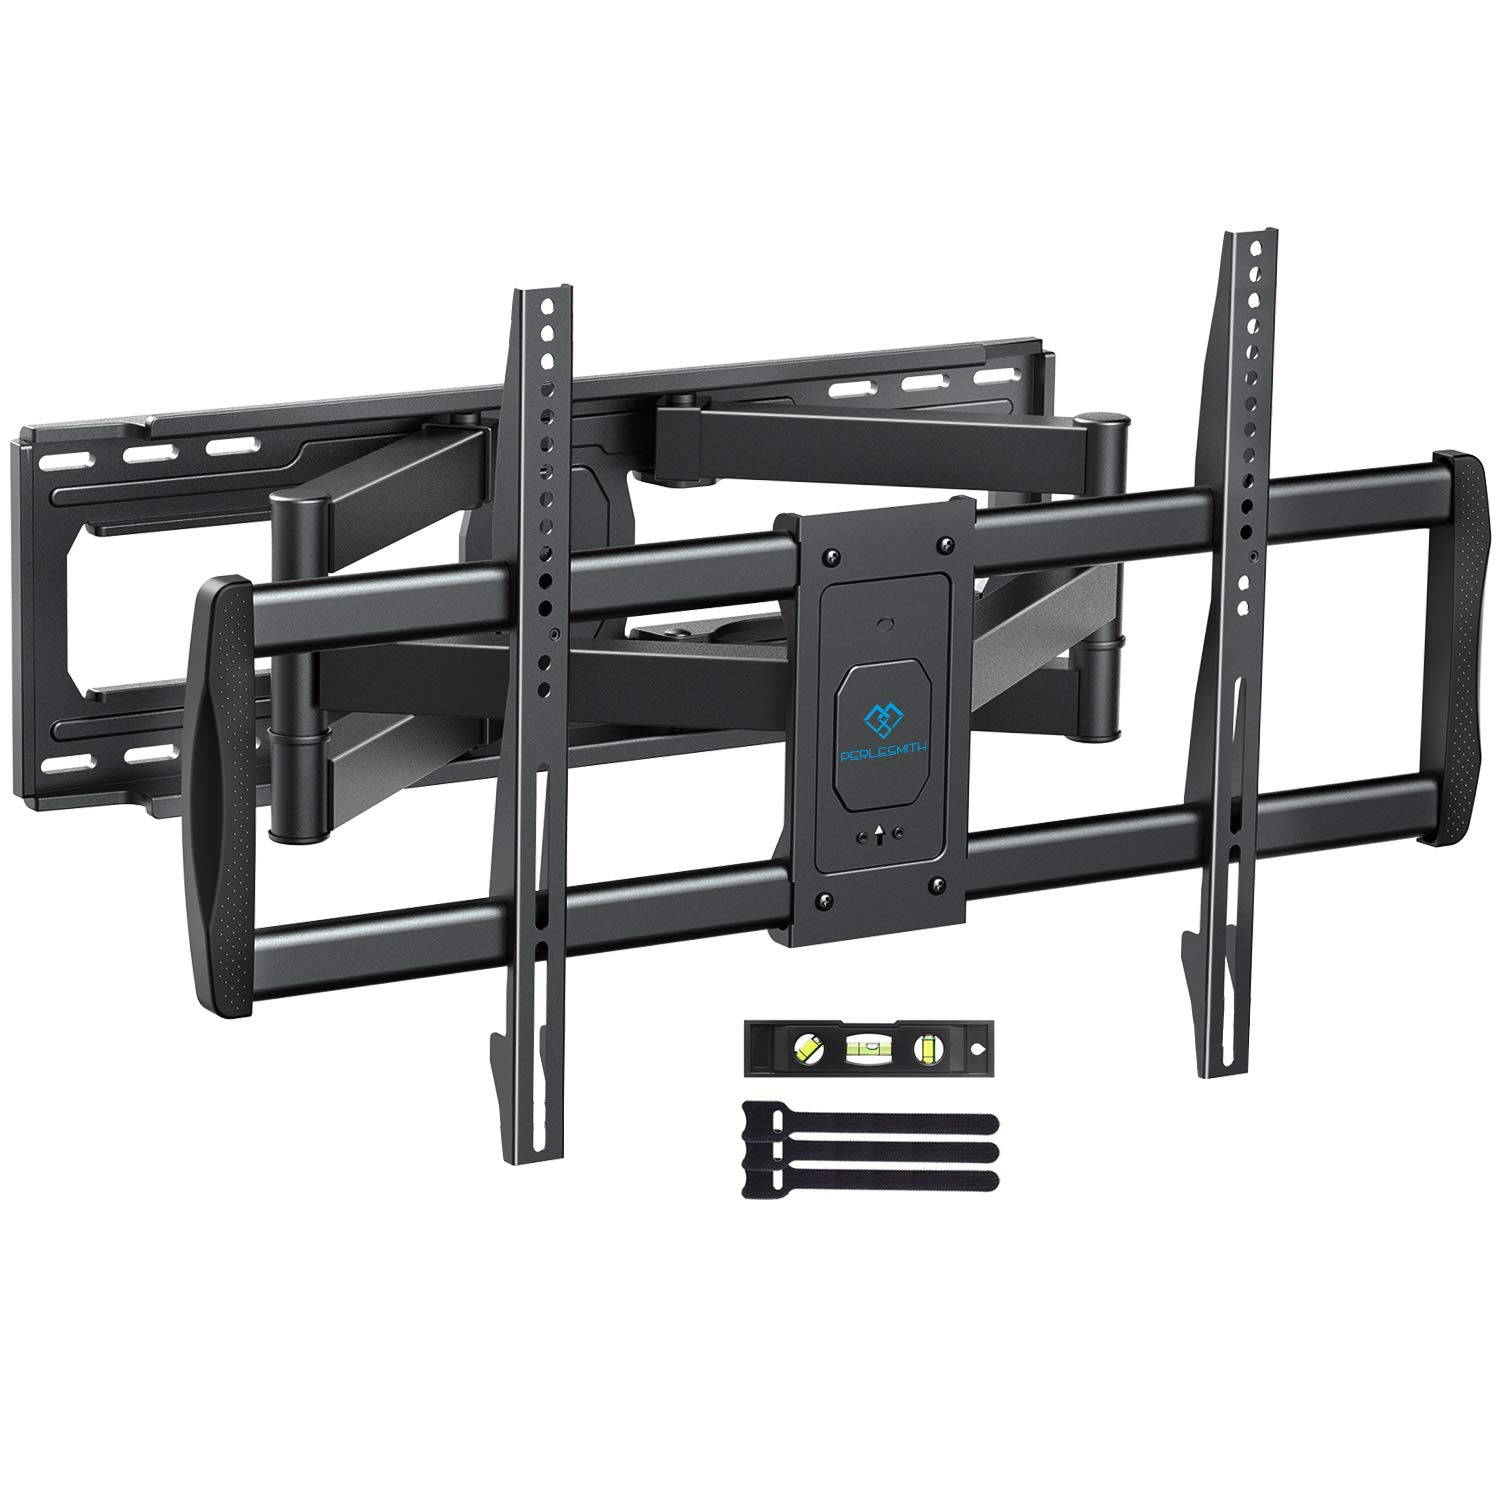 PERLESMITH TV Wall Mount Bracket Full Motion, Tilts, Swivels for most 50-90 Inch LED LCD OLED Flat Screen Plasma TVs with Dual Articulating Arms, Holds up to 165lbs VESA 800x400mm Max Stud Spacing 24'' by PERLESMITH